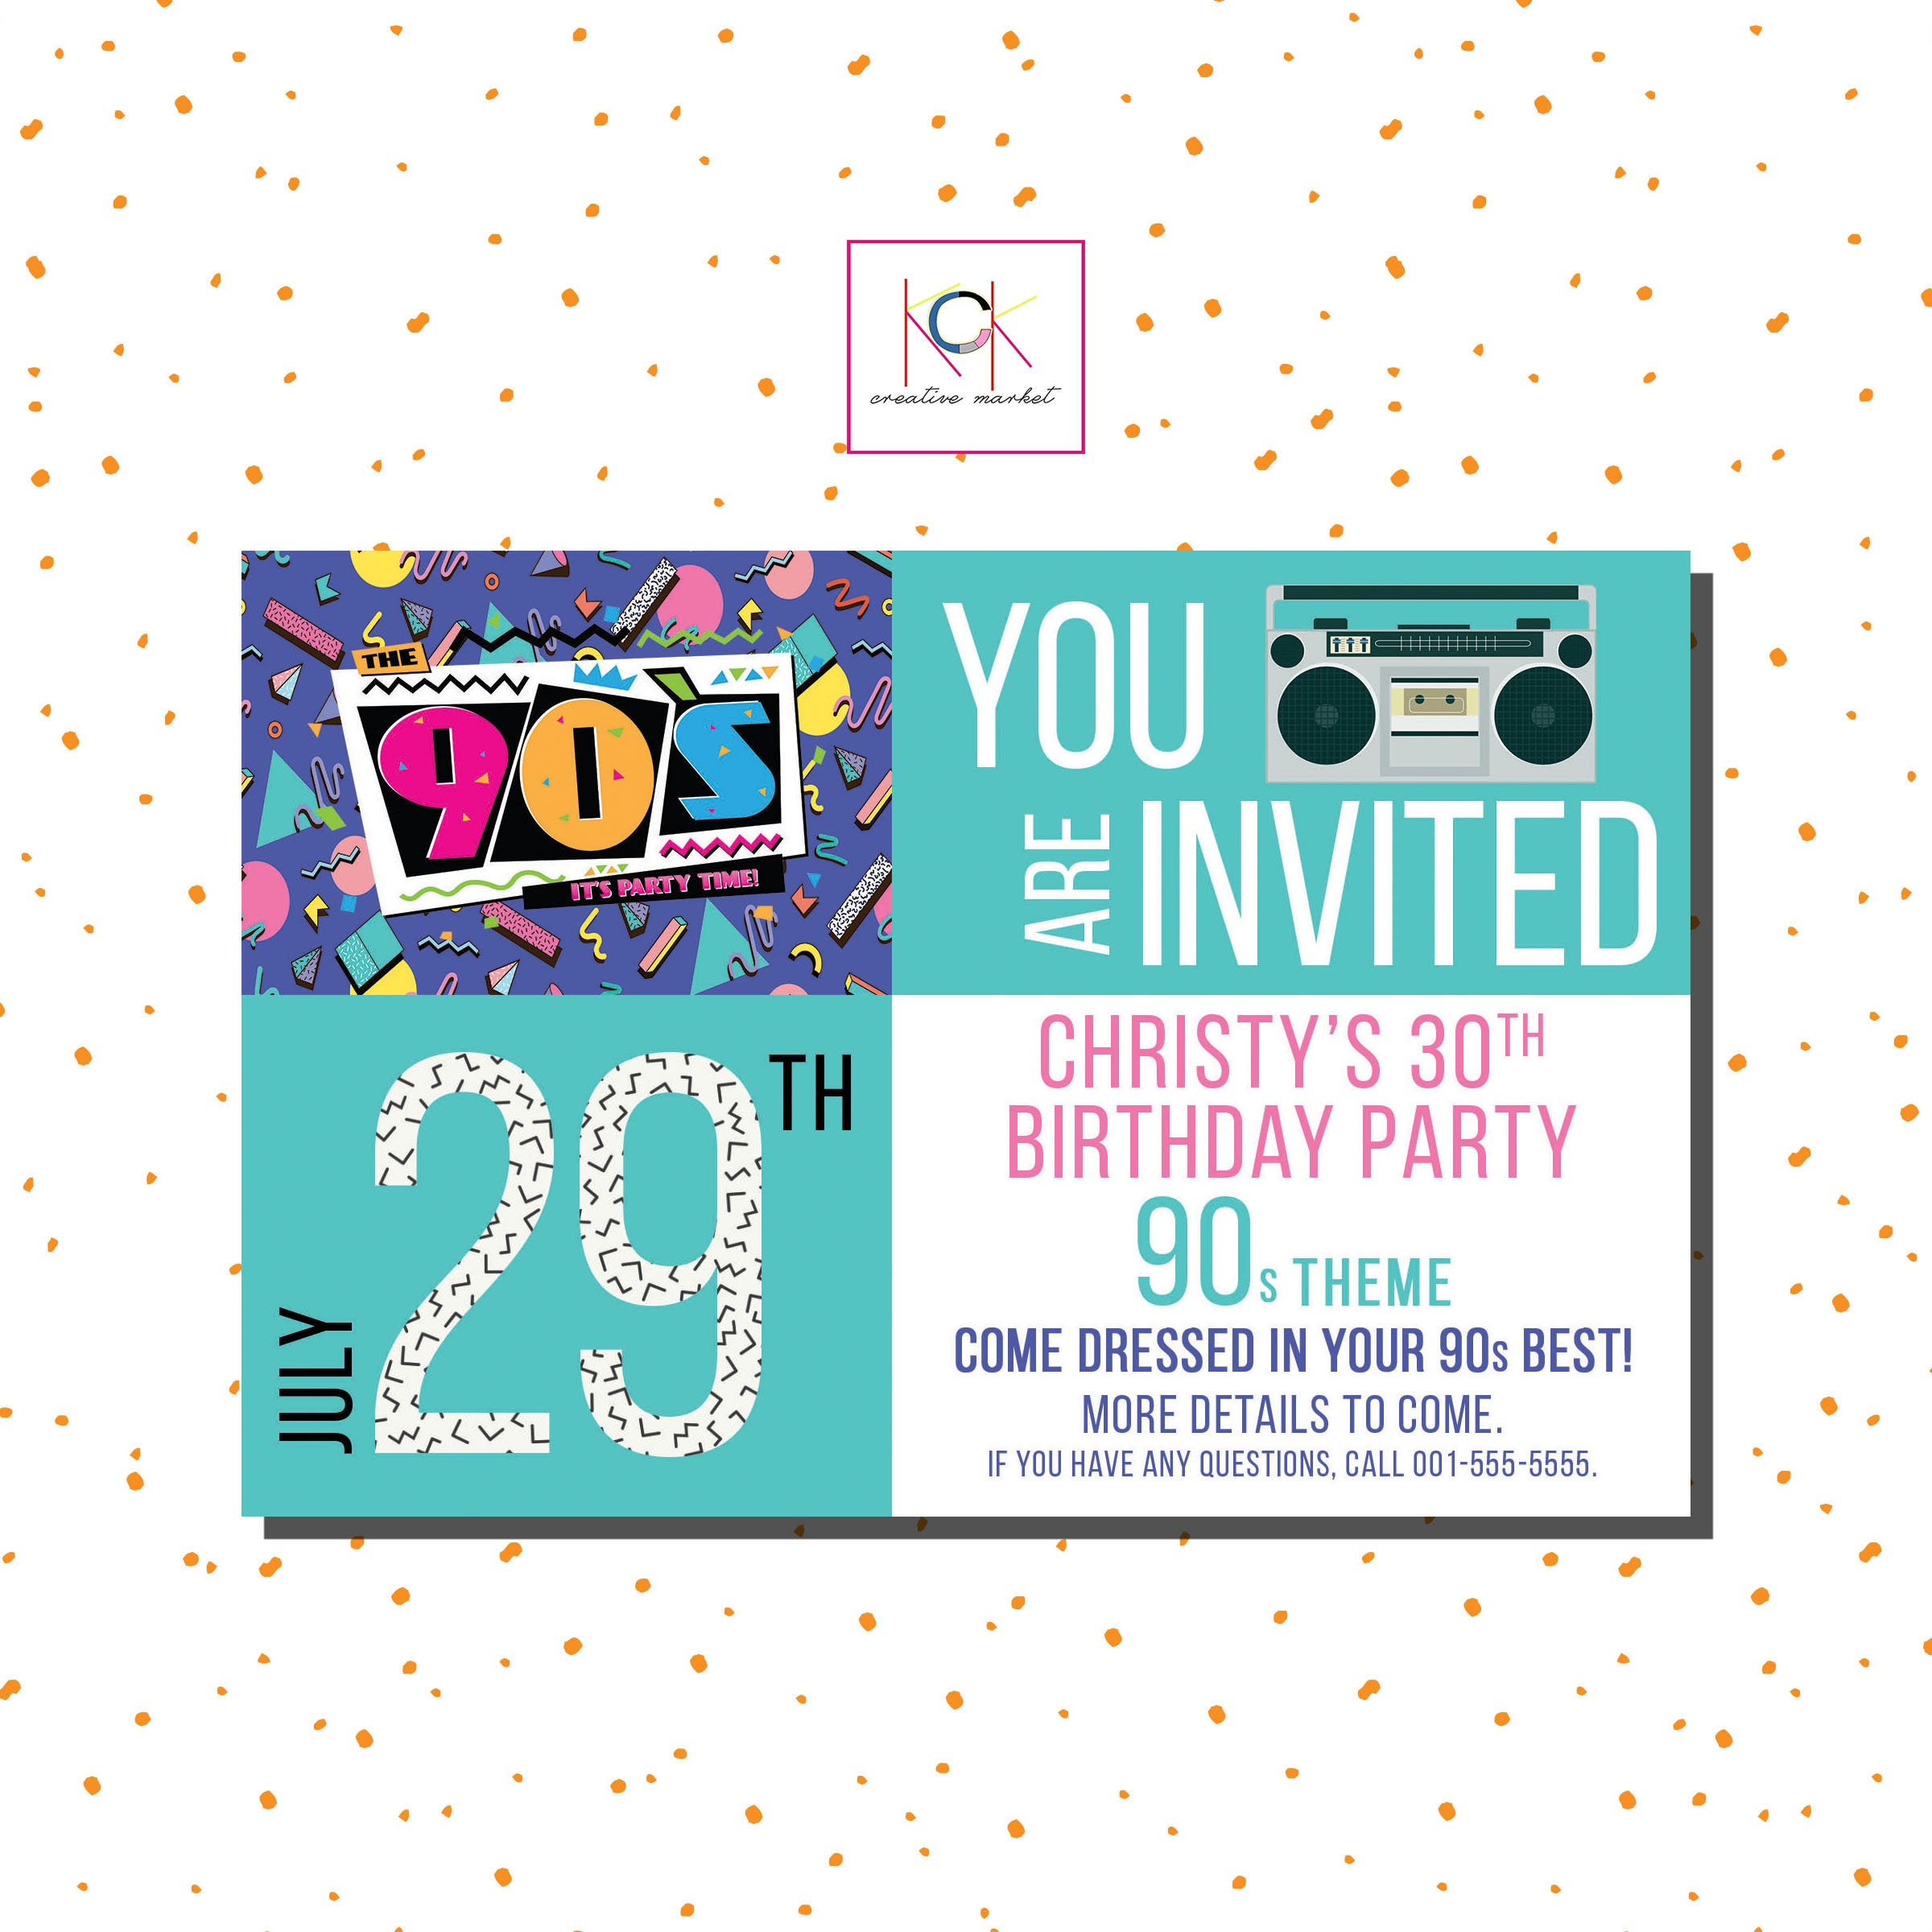 Best ideas about Order Birthday Invitations . Save or Pin 90 s Birthday Party Theme Invitation 30th Birthday Now.